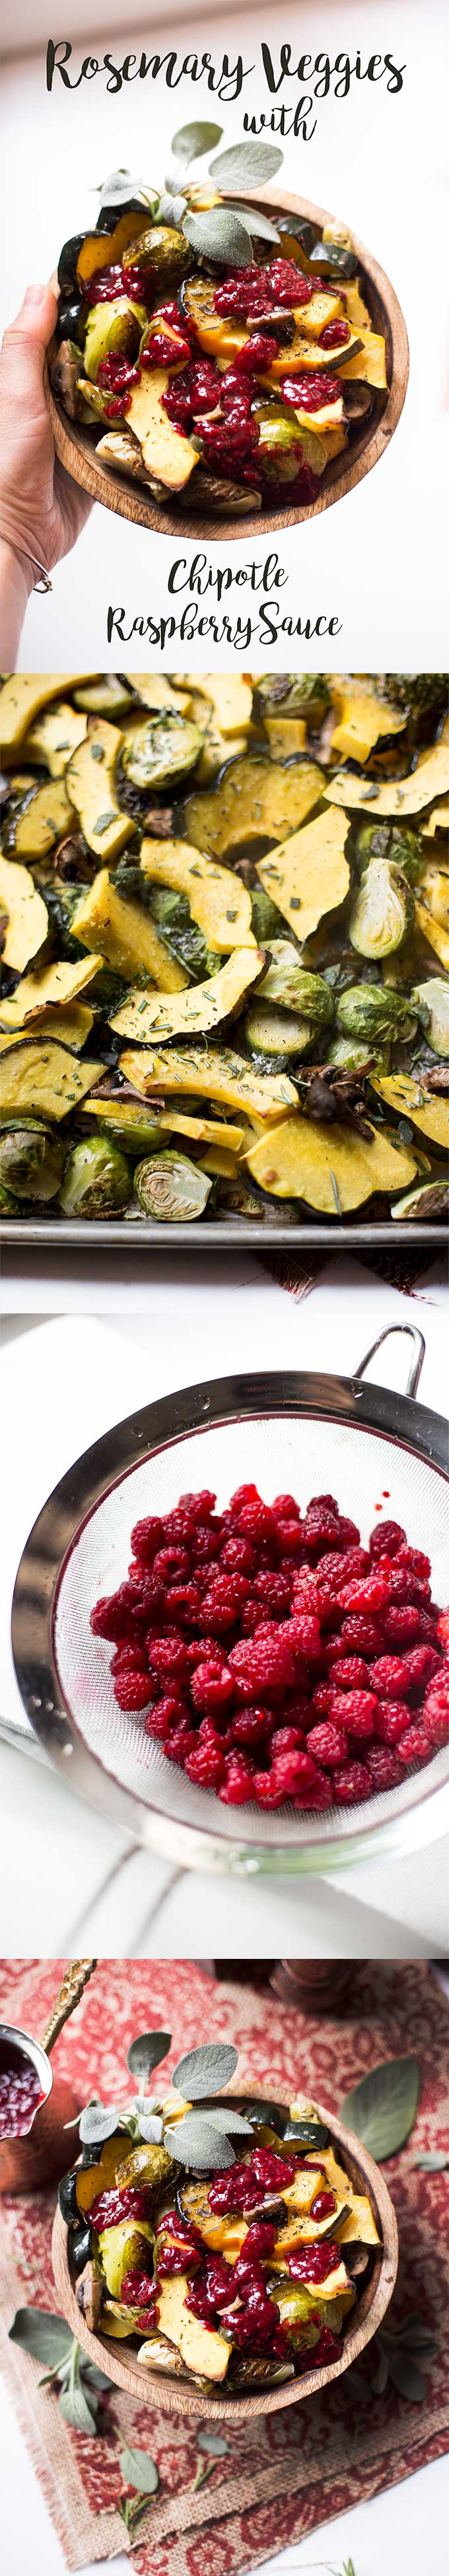 Roasted Rosemary Veggies with Chipotle Raspberry Sauce - roasted acorn squash, brussels sprouts and mushrooms drizzled with spicy chipotle raspberry sauce.